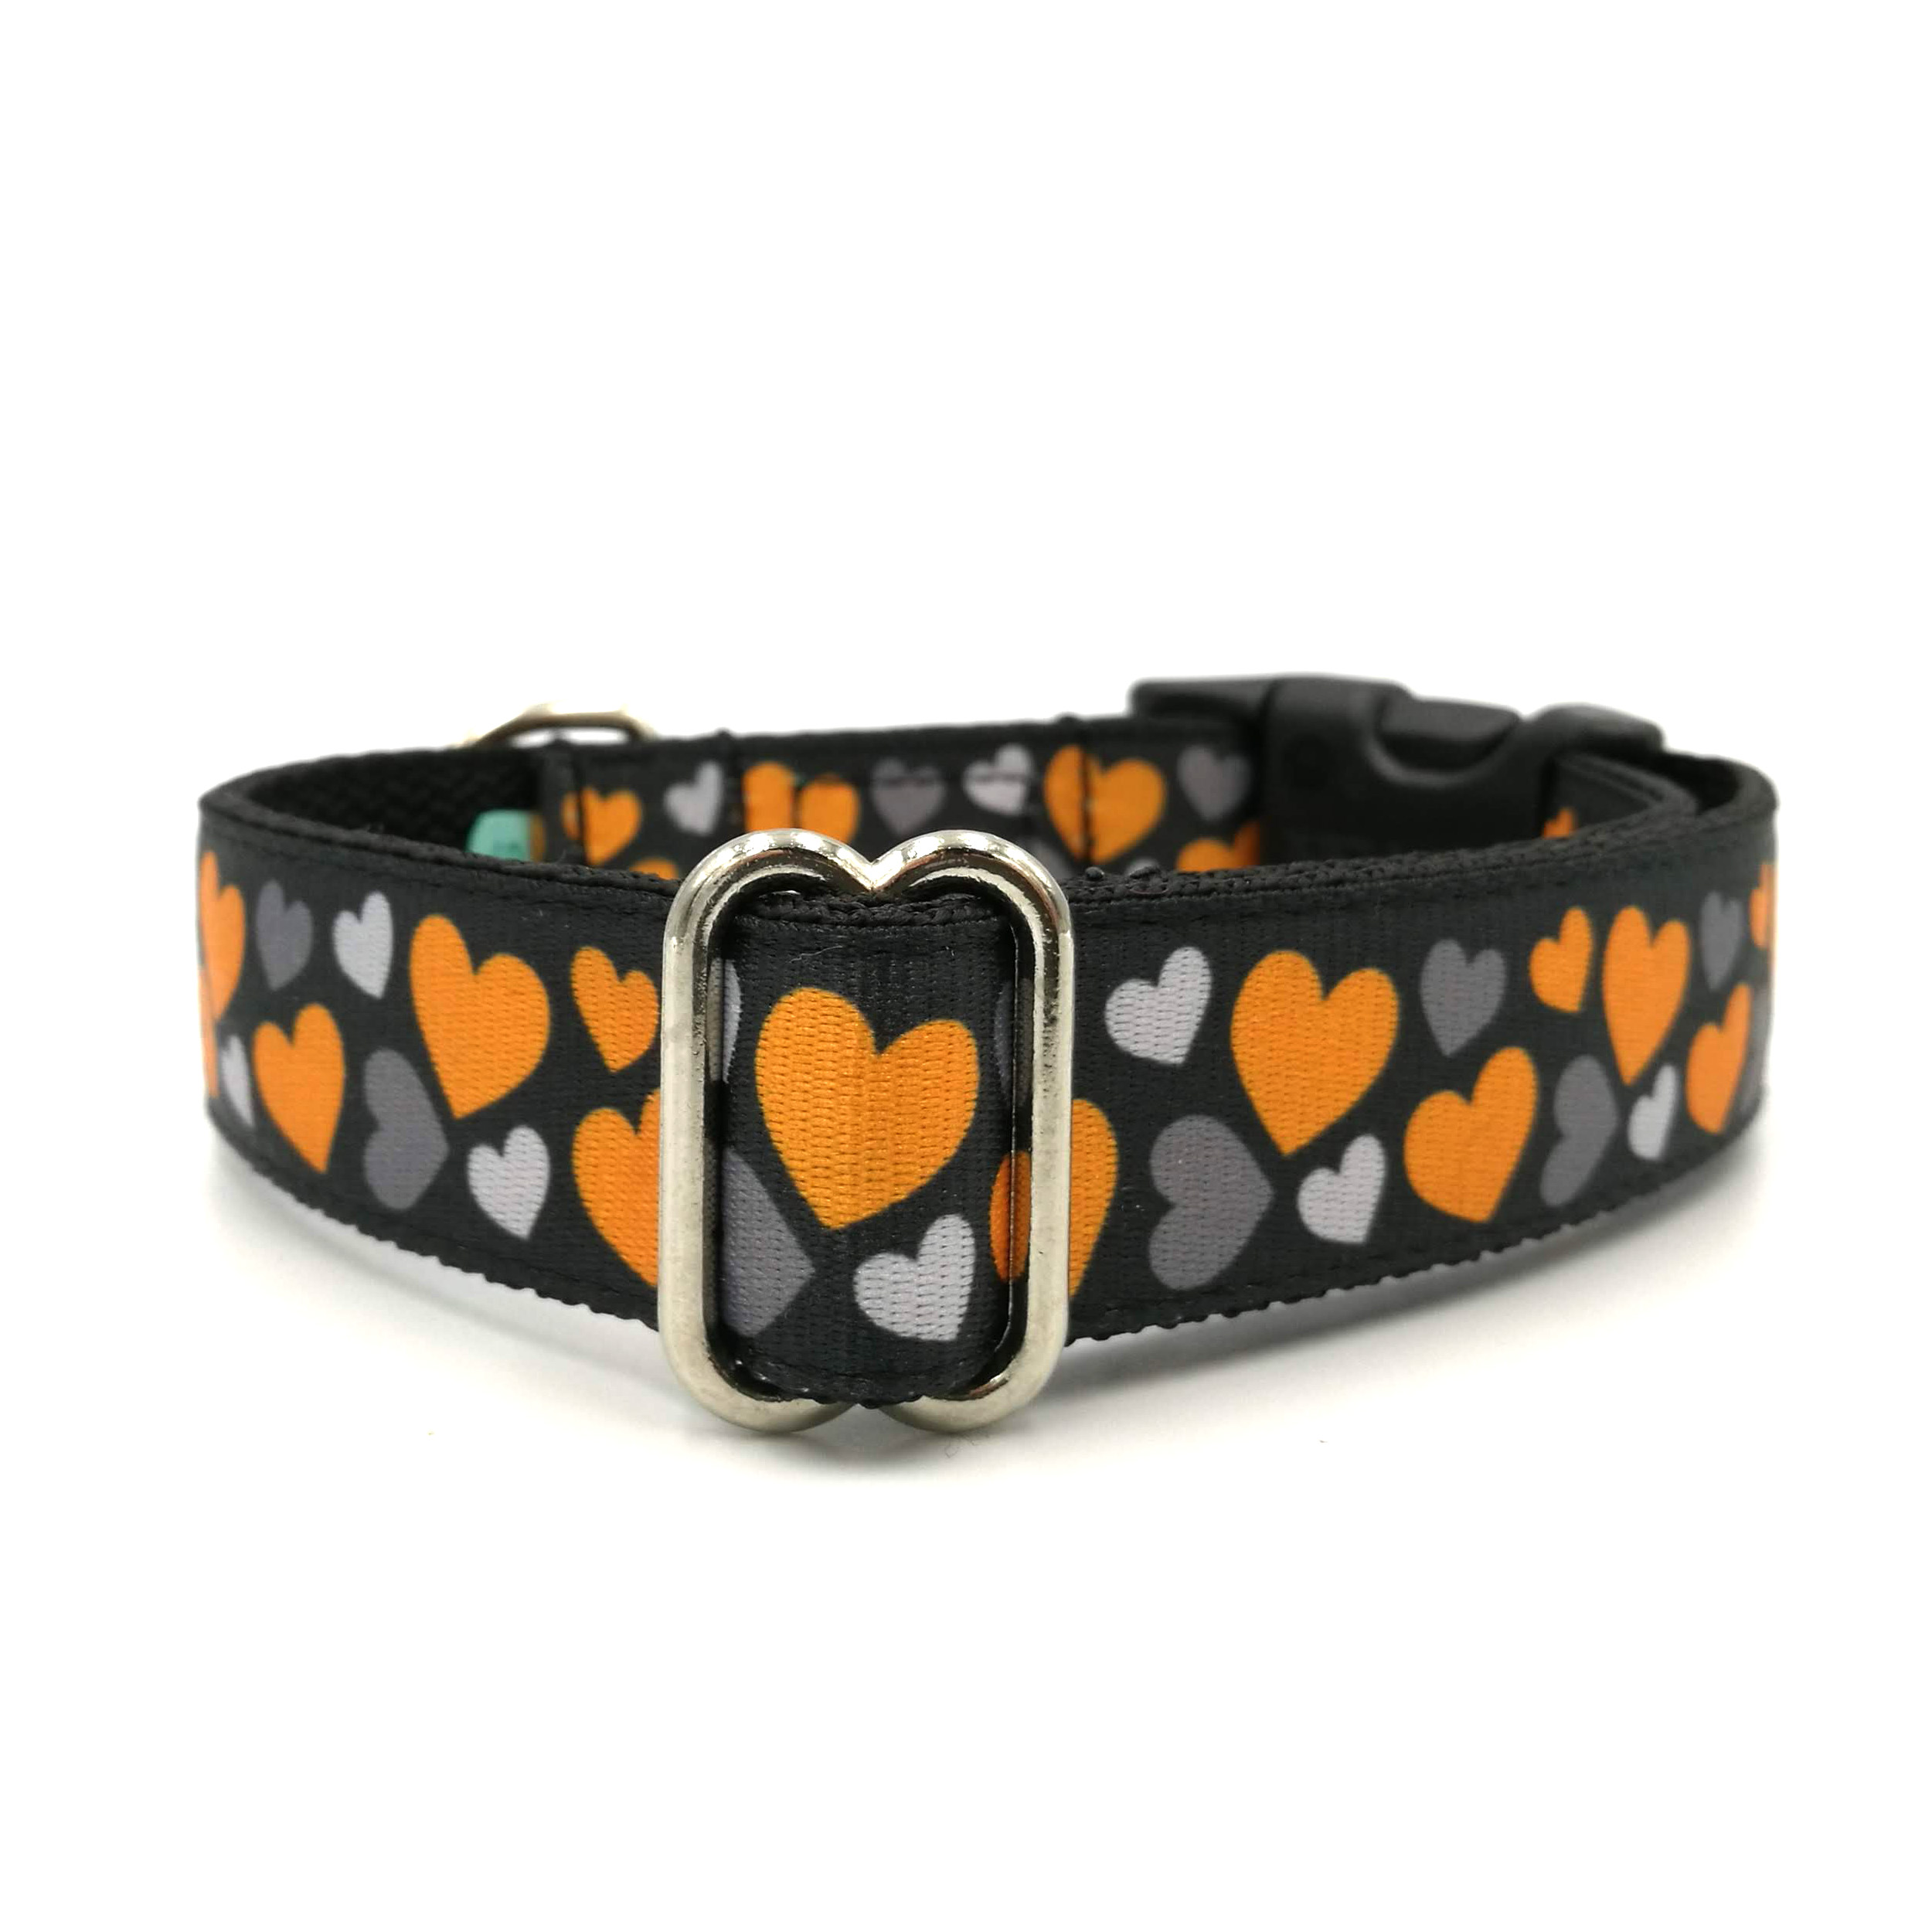 Darling dog collar